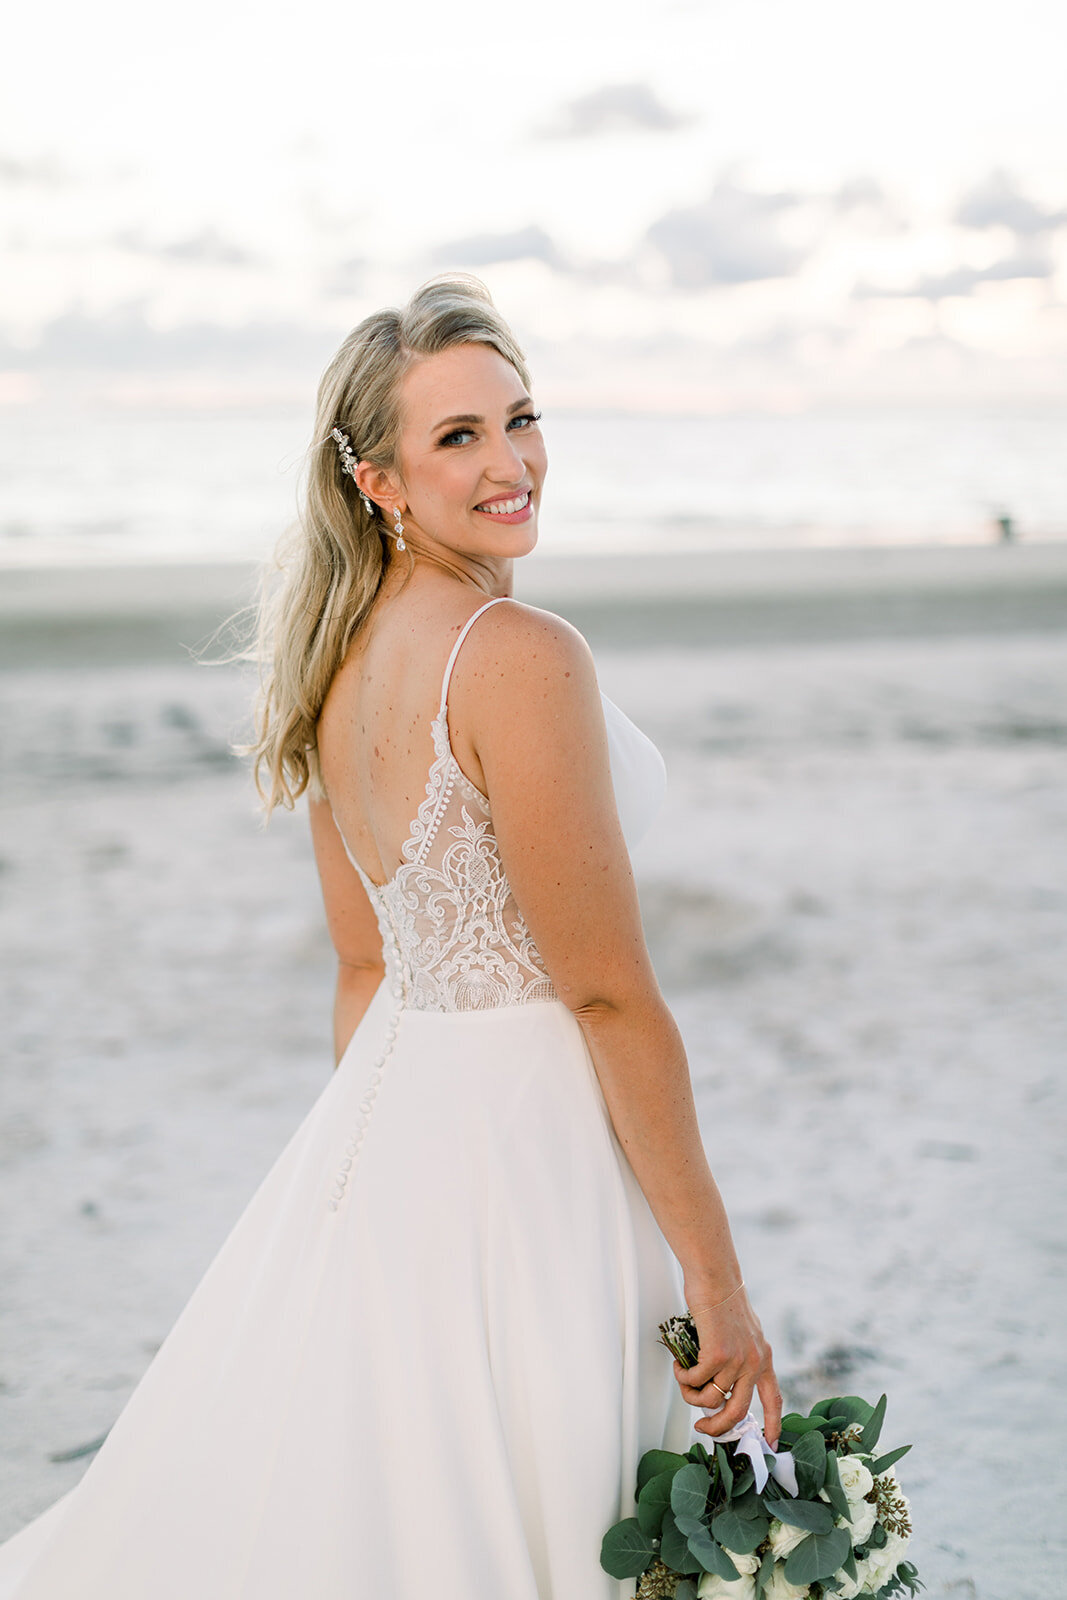 alex-mike-bowditch-beach-fort-myers-wedding-photos-1420